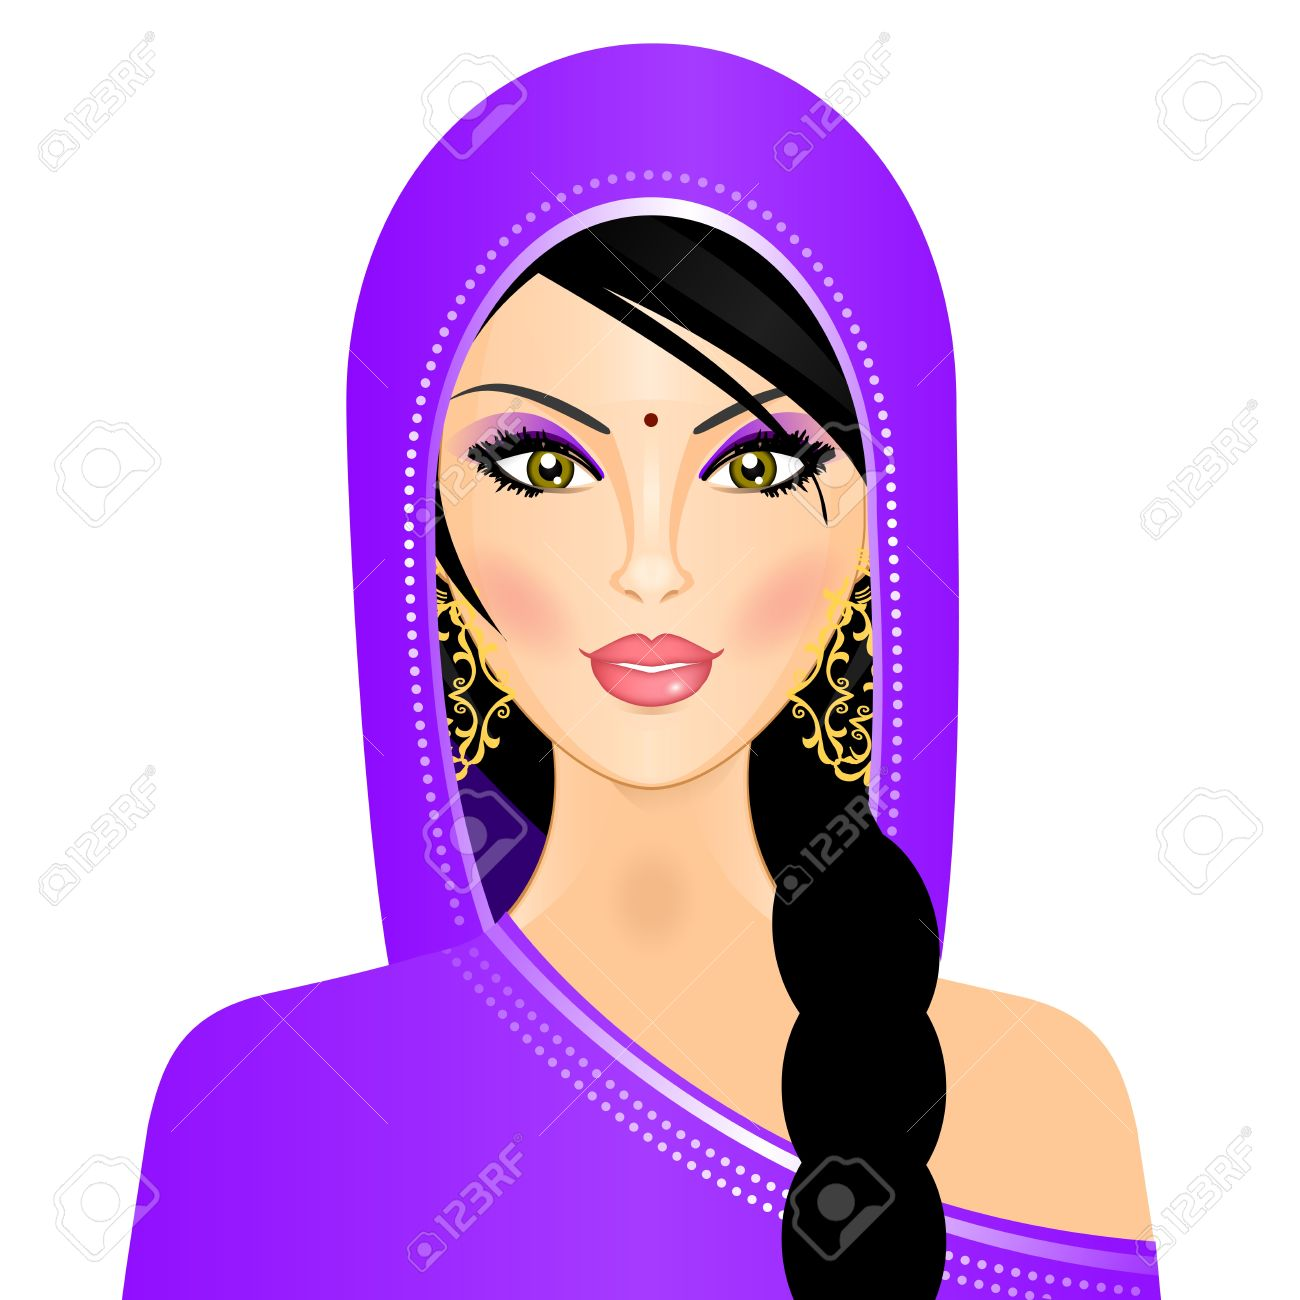 illustration of indian woman royalty free cliparts vectors and rh 123rf com